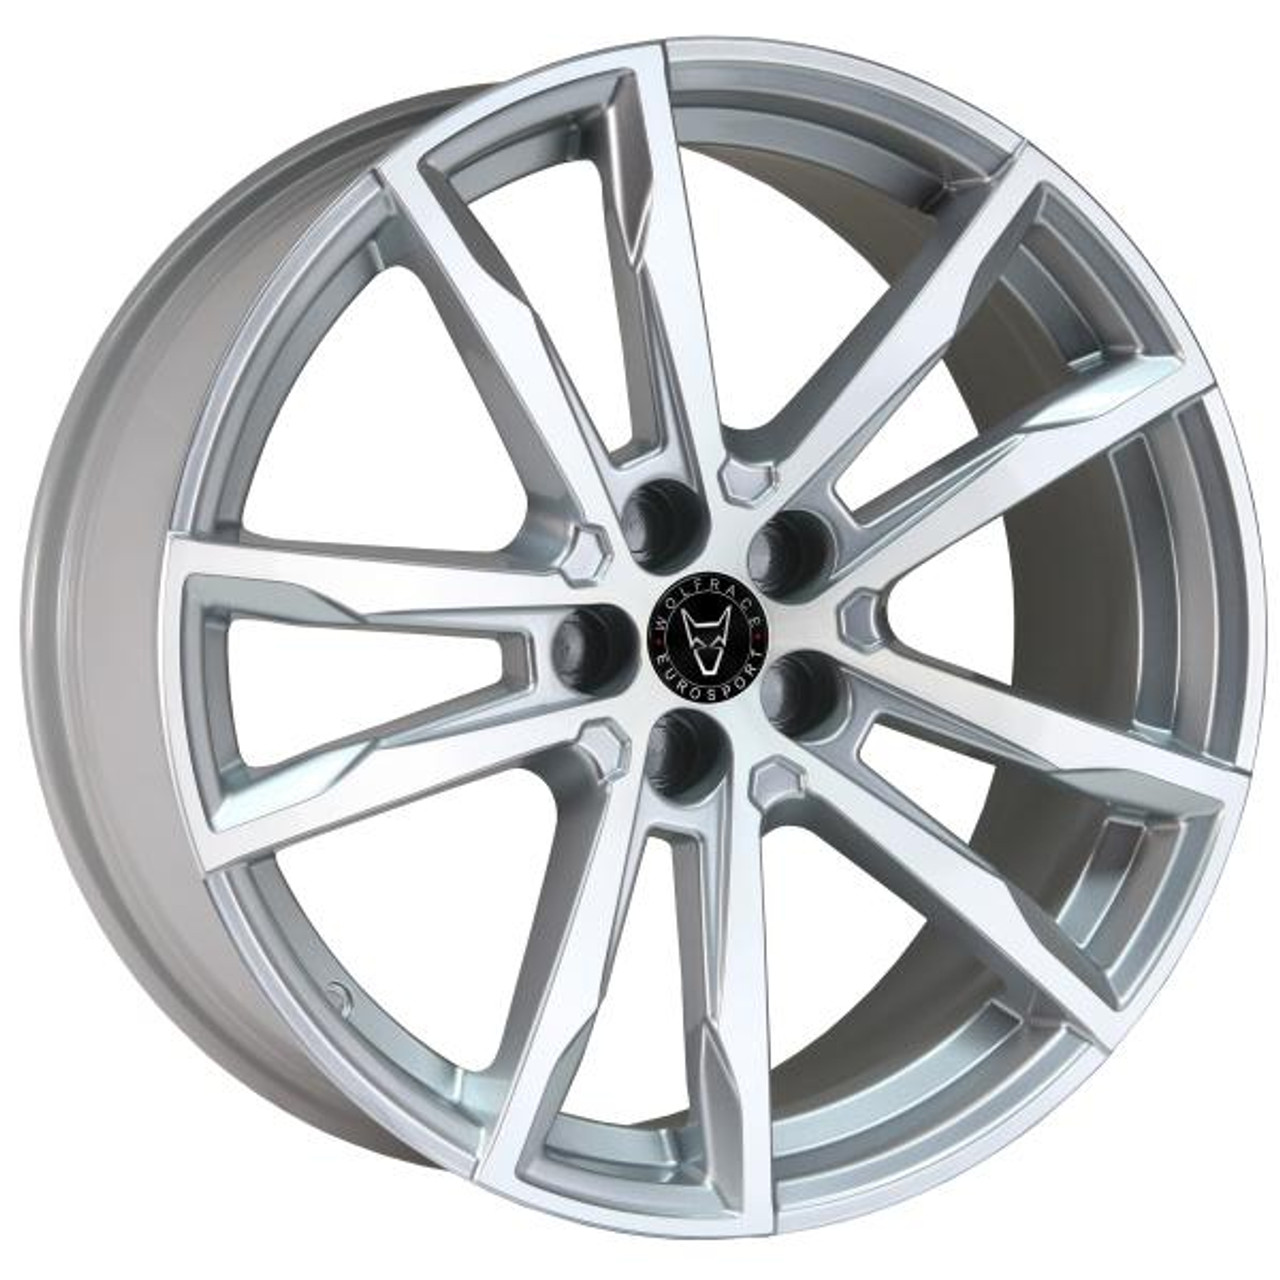 Wolfrace Eurosport Dortmund Alloy Wheels Silver / Polished